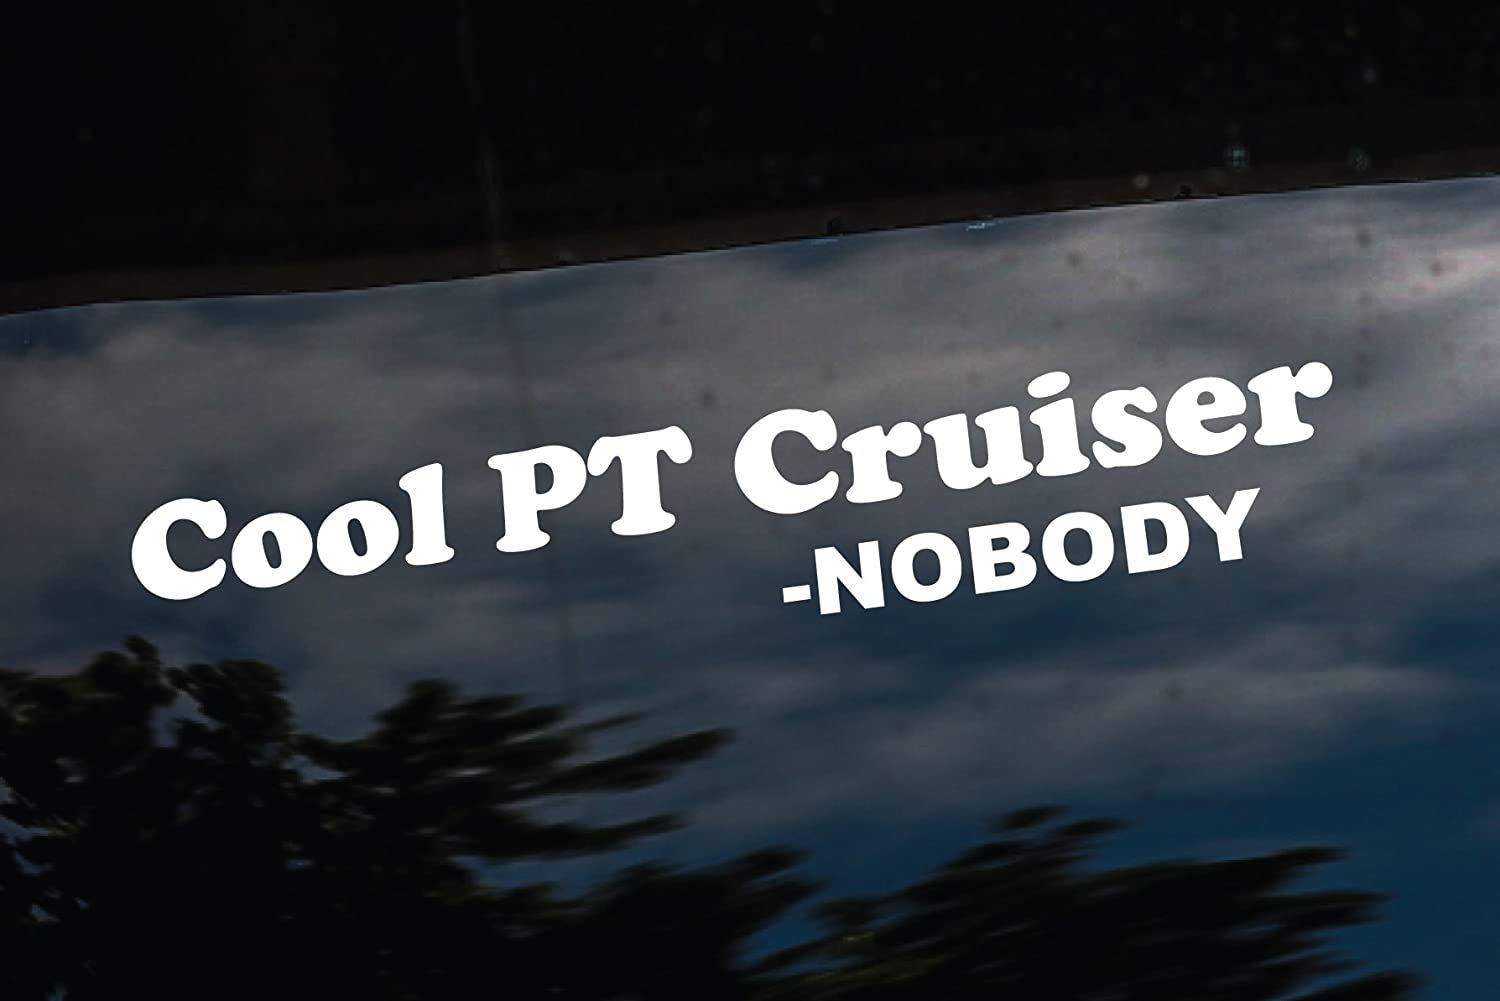 Amazon com cool pt cruiser nobody funny quote car window 8 decal sticker automotive